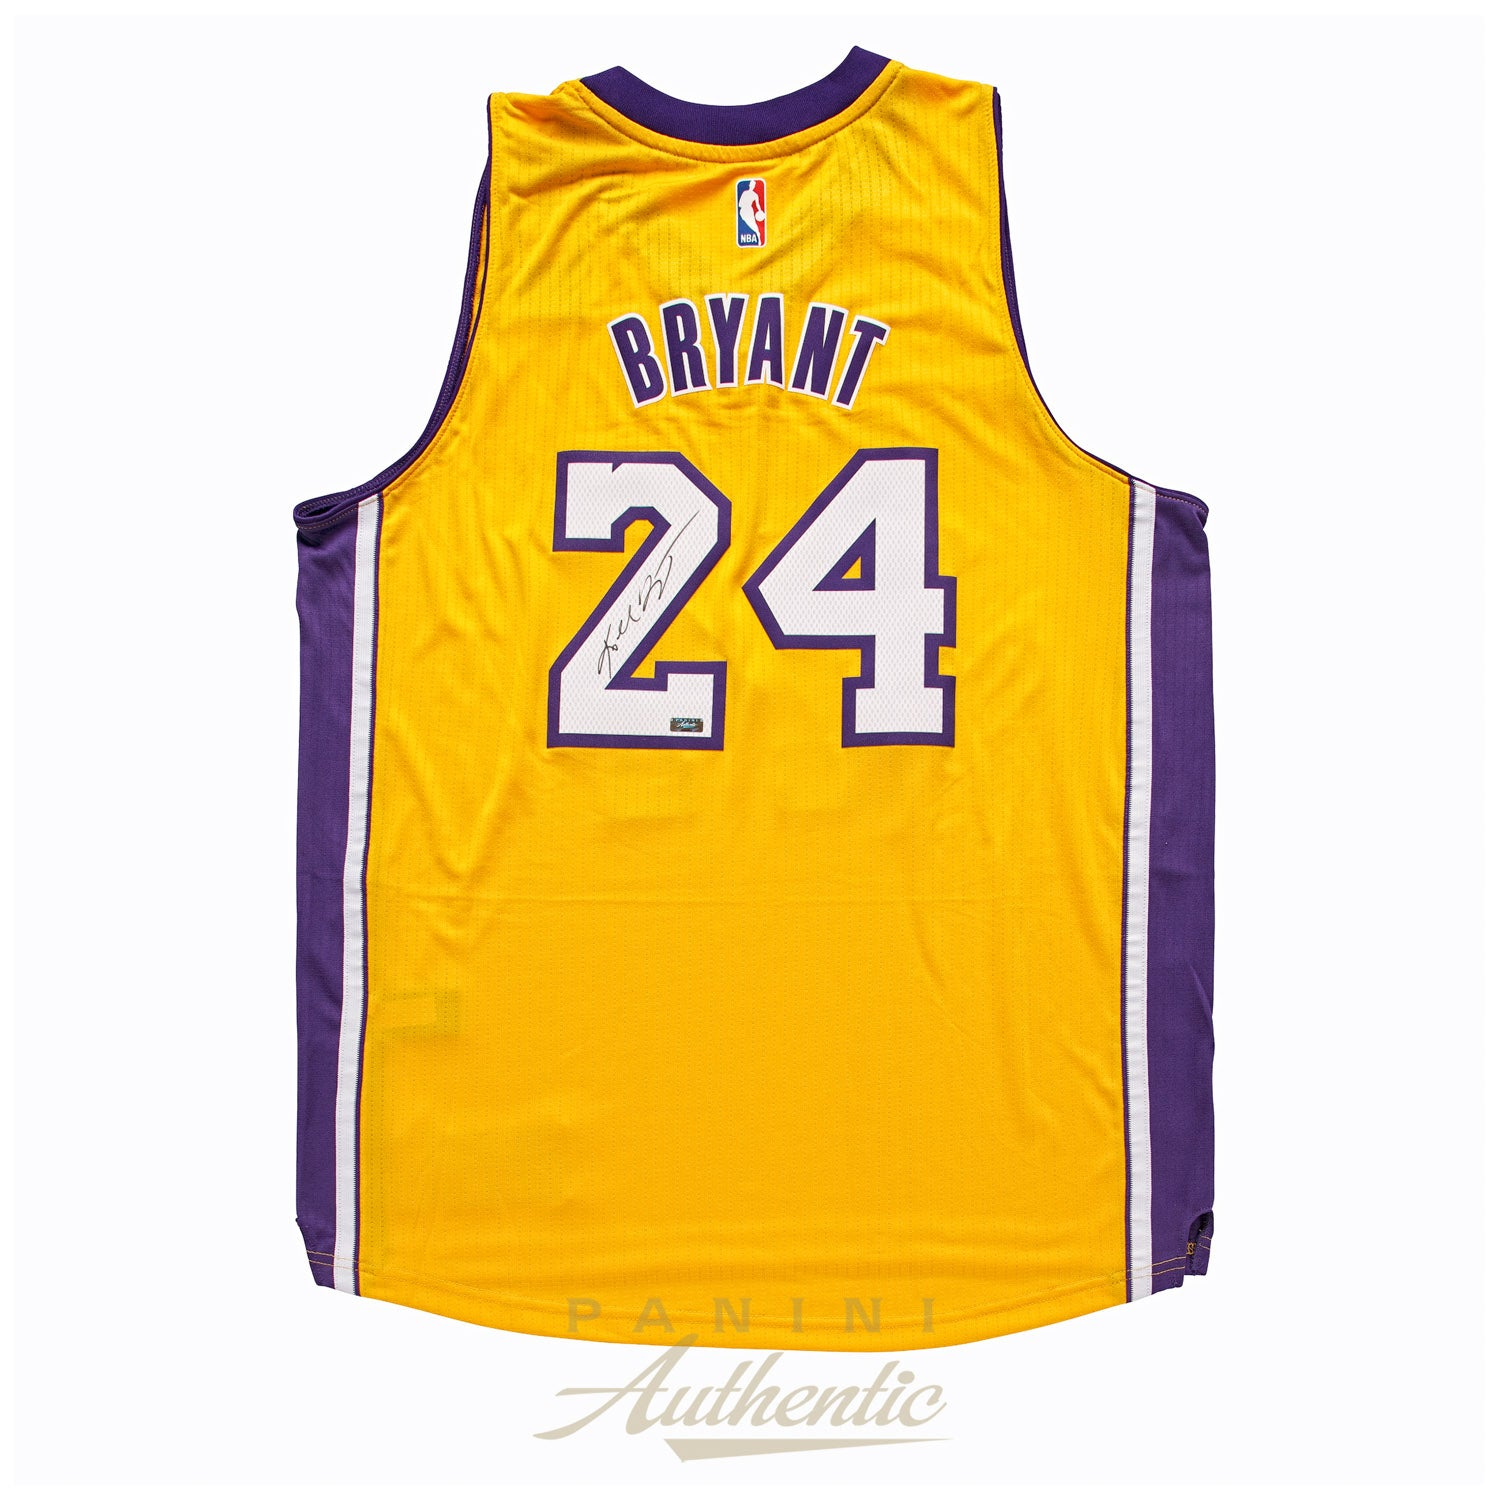 eebd22afaf3 Tap or pinch to zoom. Kobe Bryant Panini Authentic Autographed Gold Adidas  Swingman Jersey-Cherry Collectables